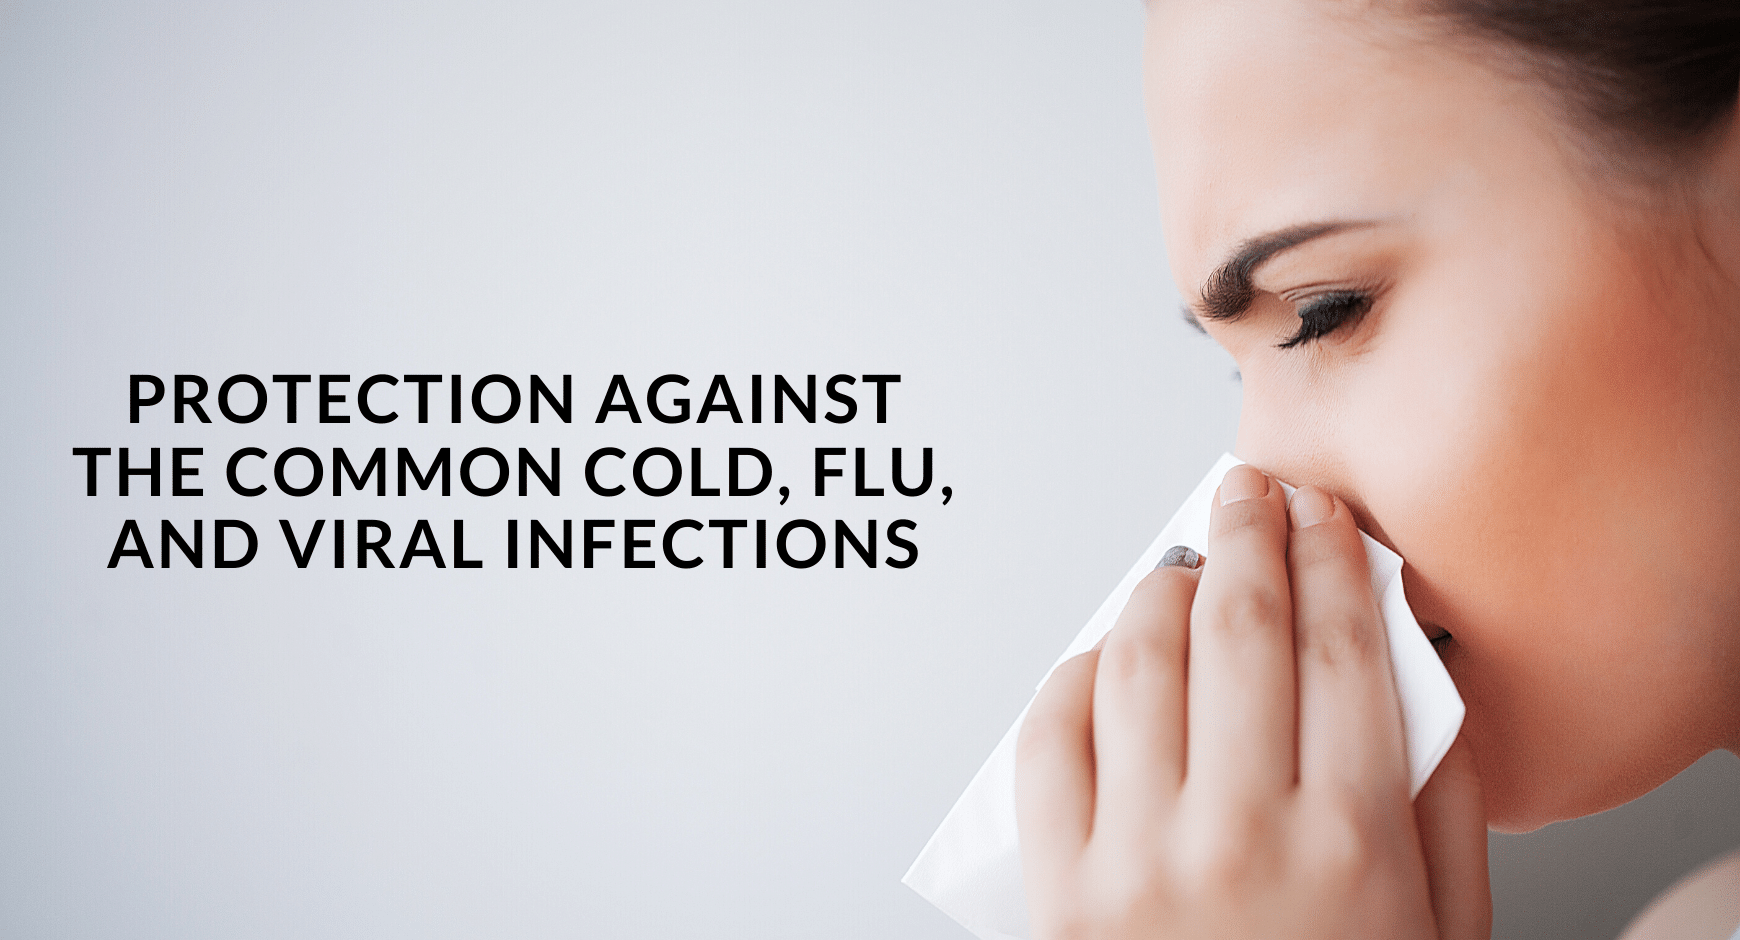 Protection against the common cold, flu, and viral infections